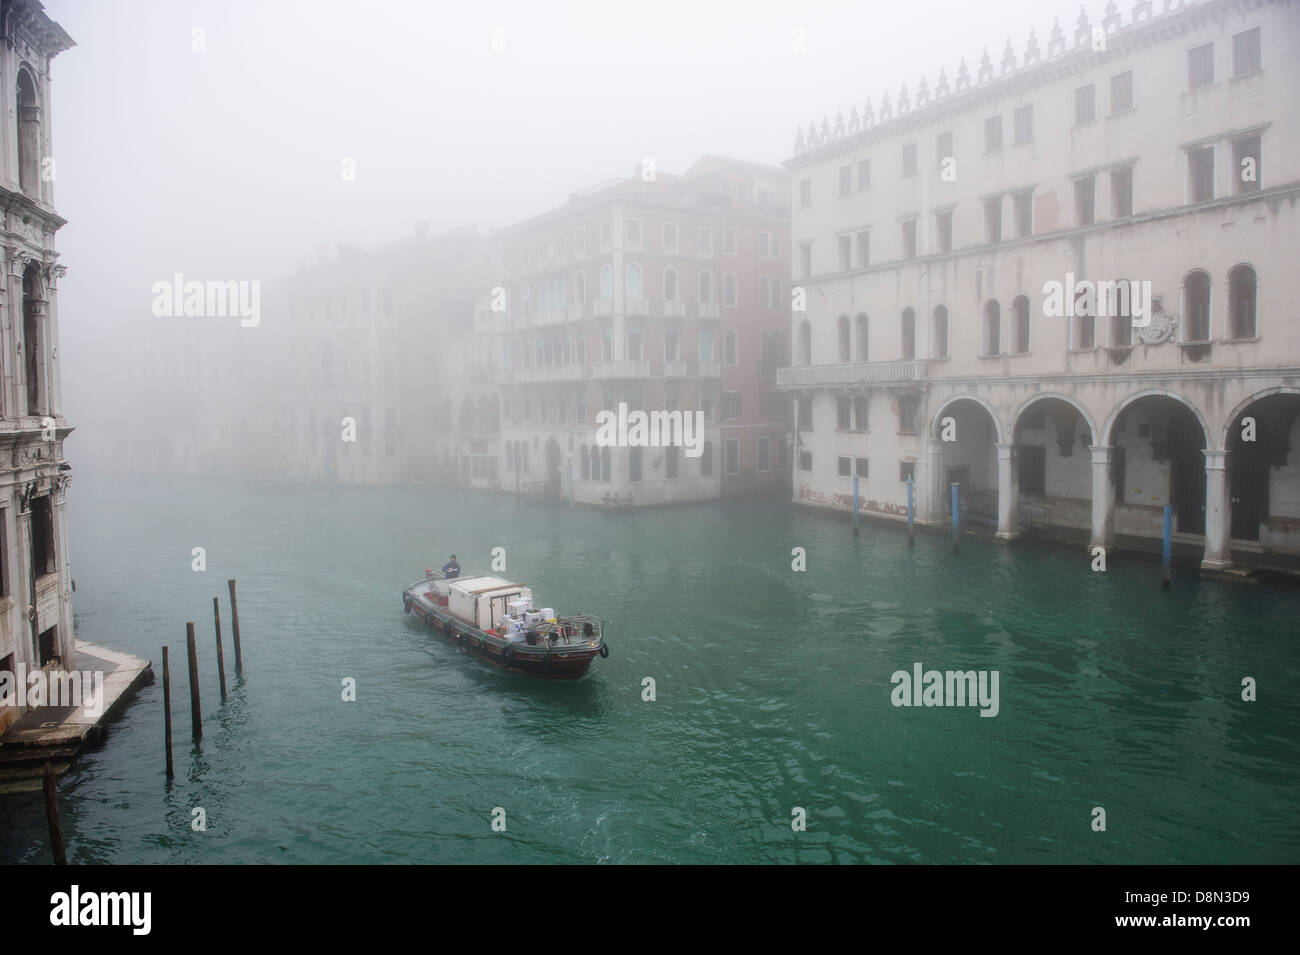 A delivery boat sails in the Grand Canal of Venice covered with thick fog, Italy. - Stock Image